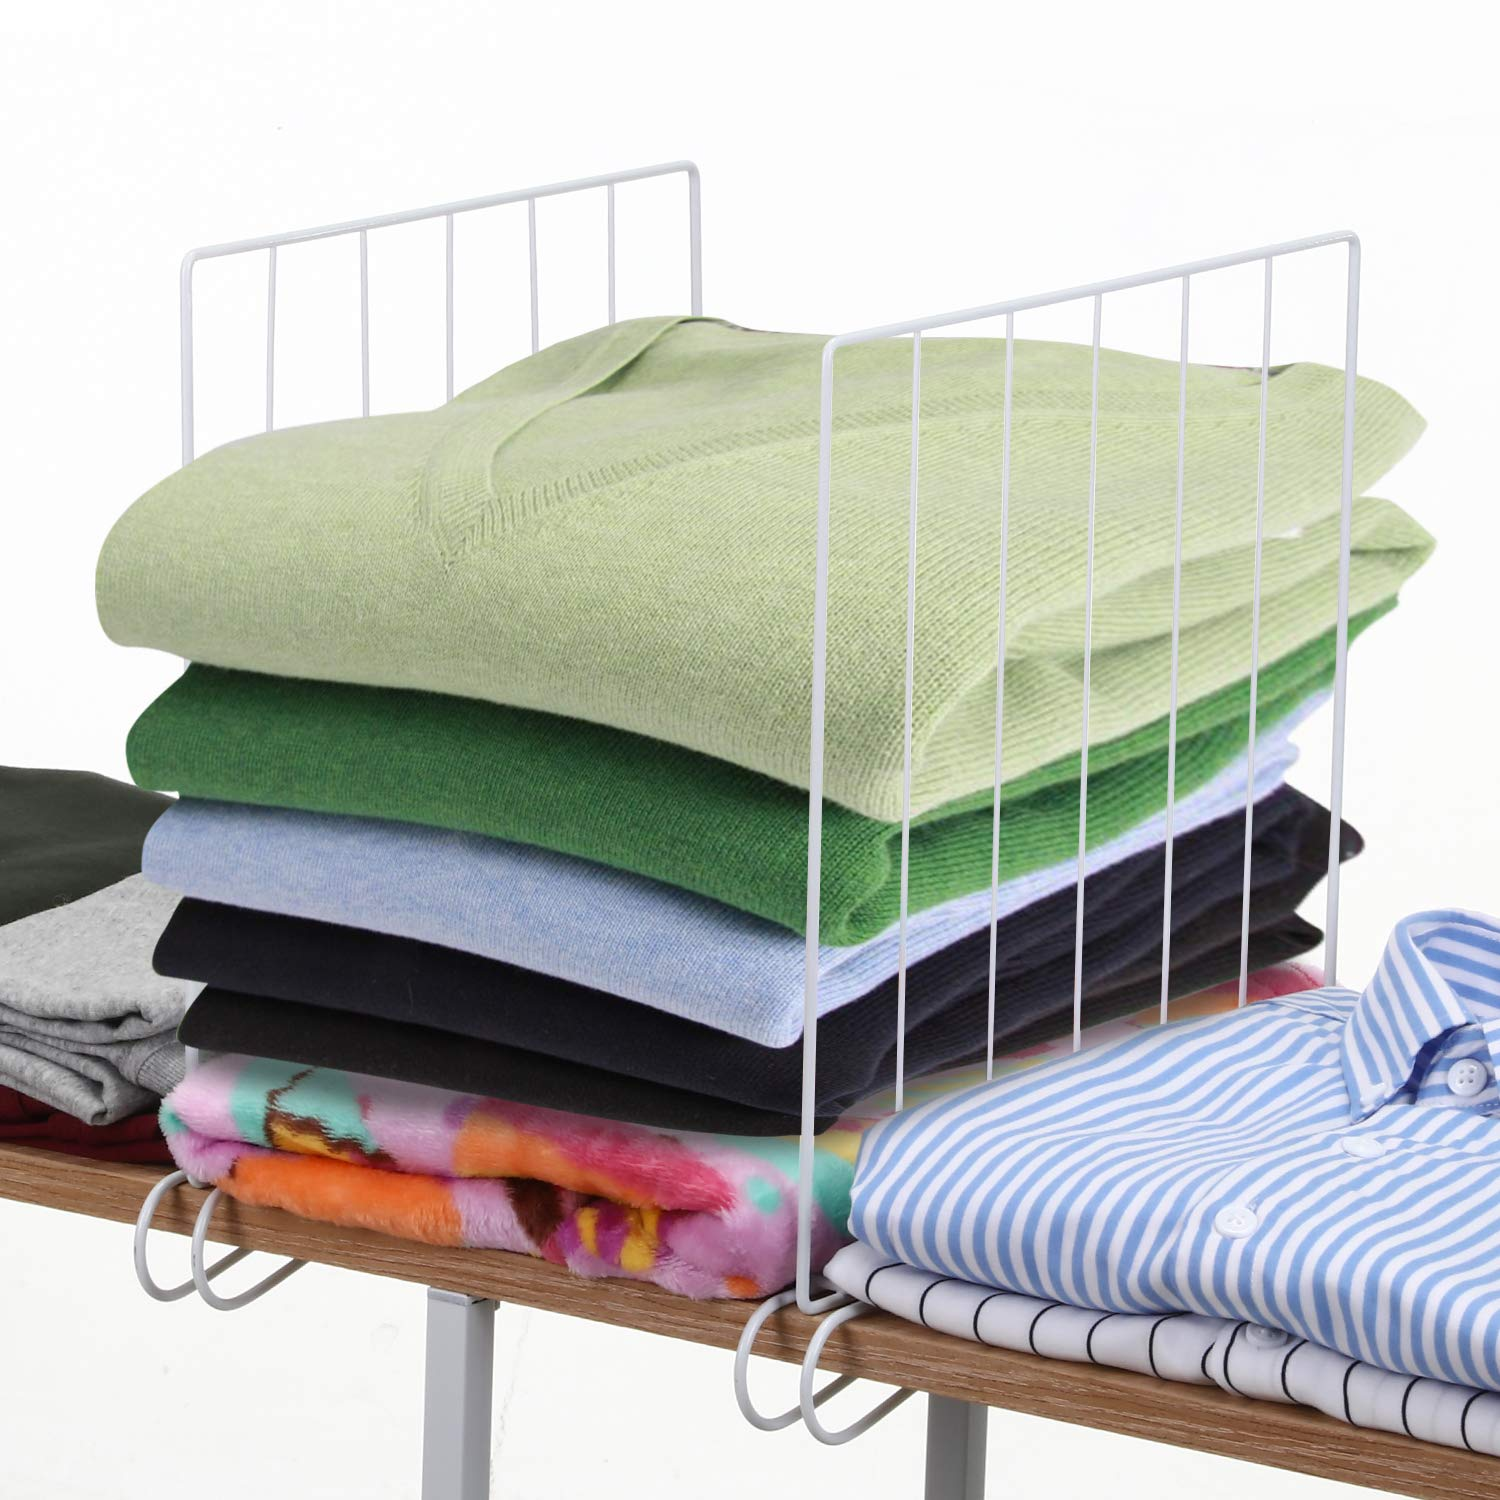 MaidMAX 8 Pack Wire Shelf Dividers for Closets, Closet Shelf Separators for 1-Inch Thick Shelves, 11x11 Inches by MaidMAX